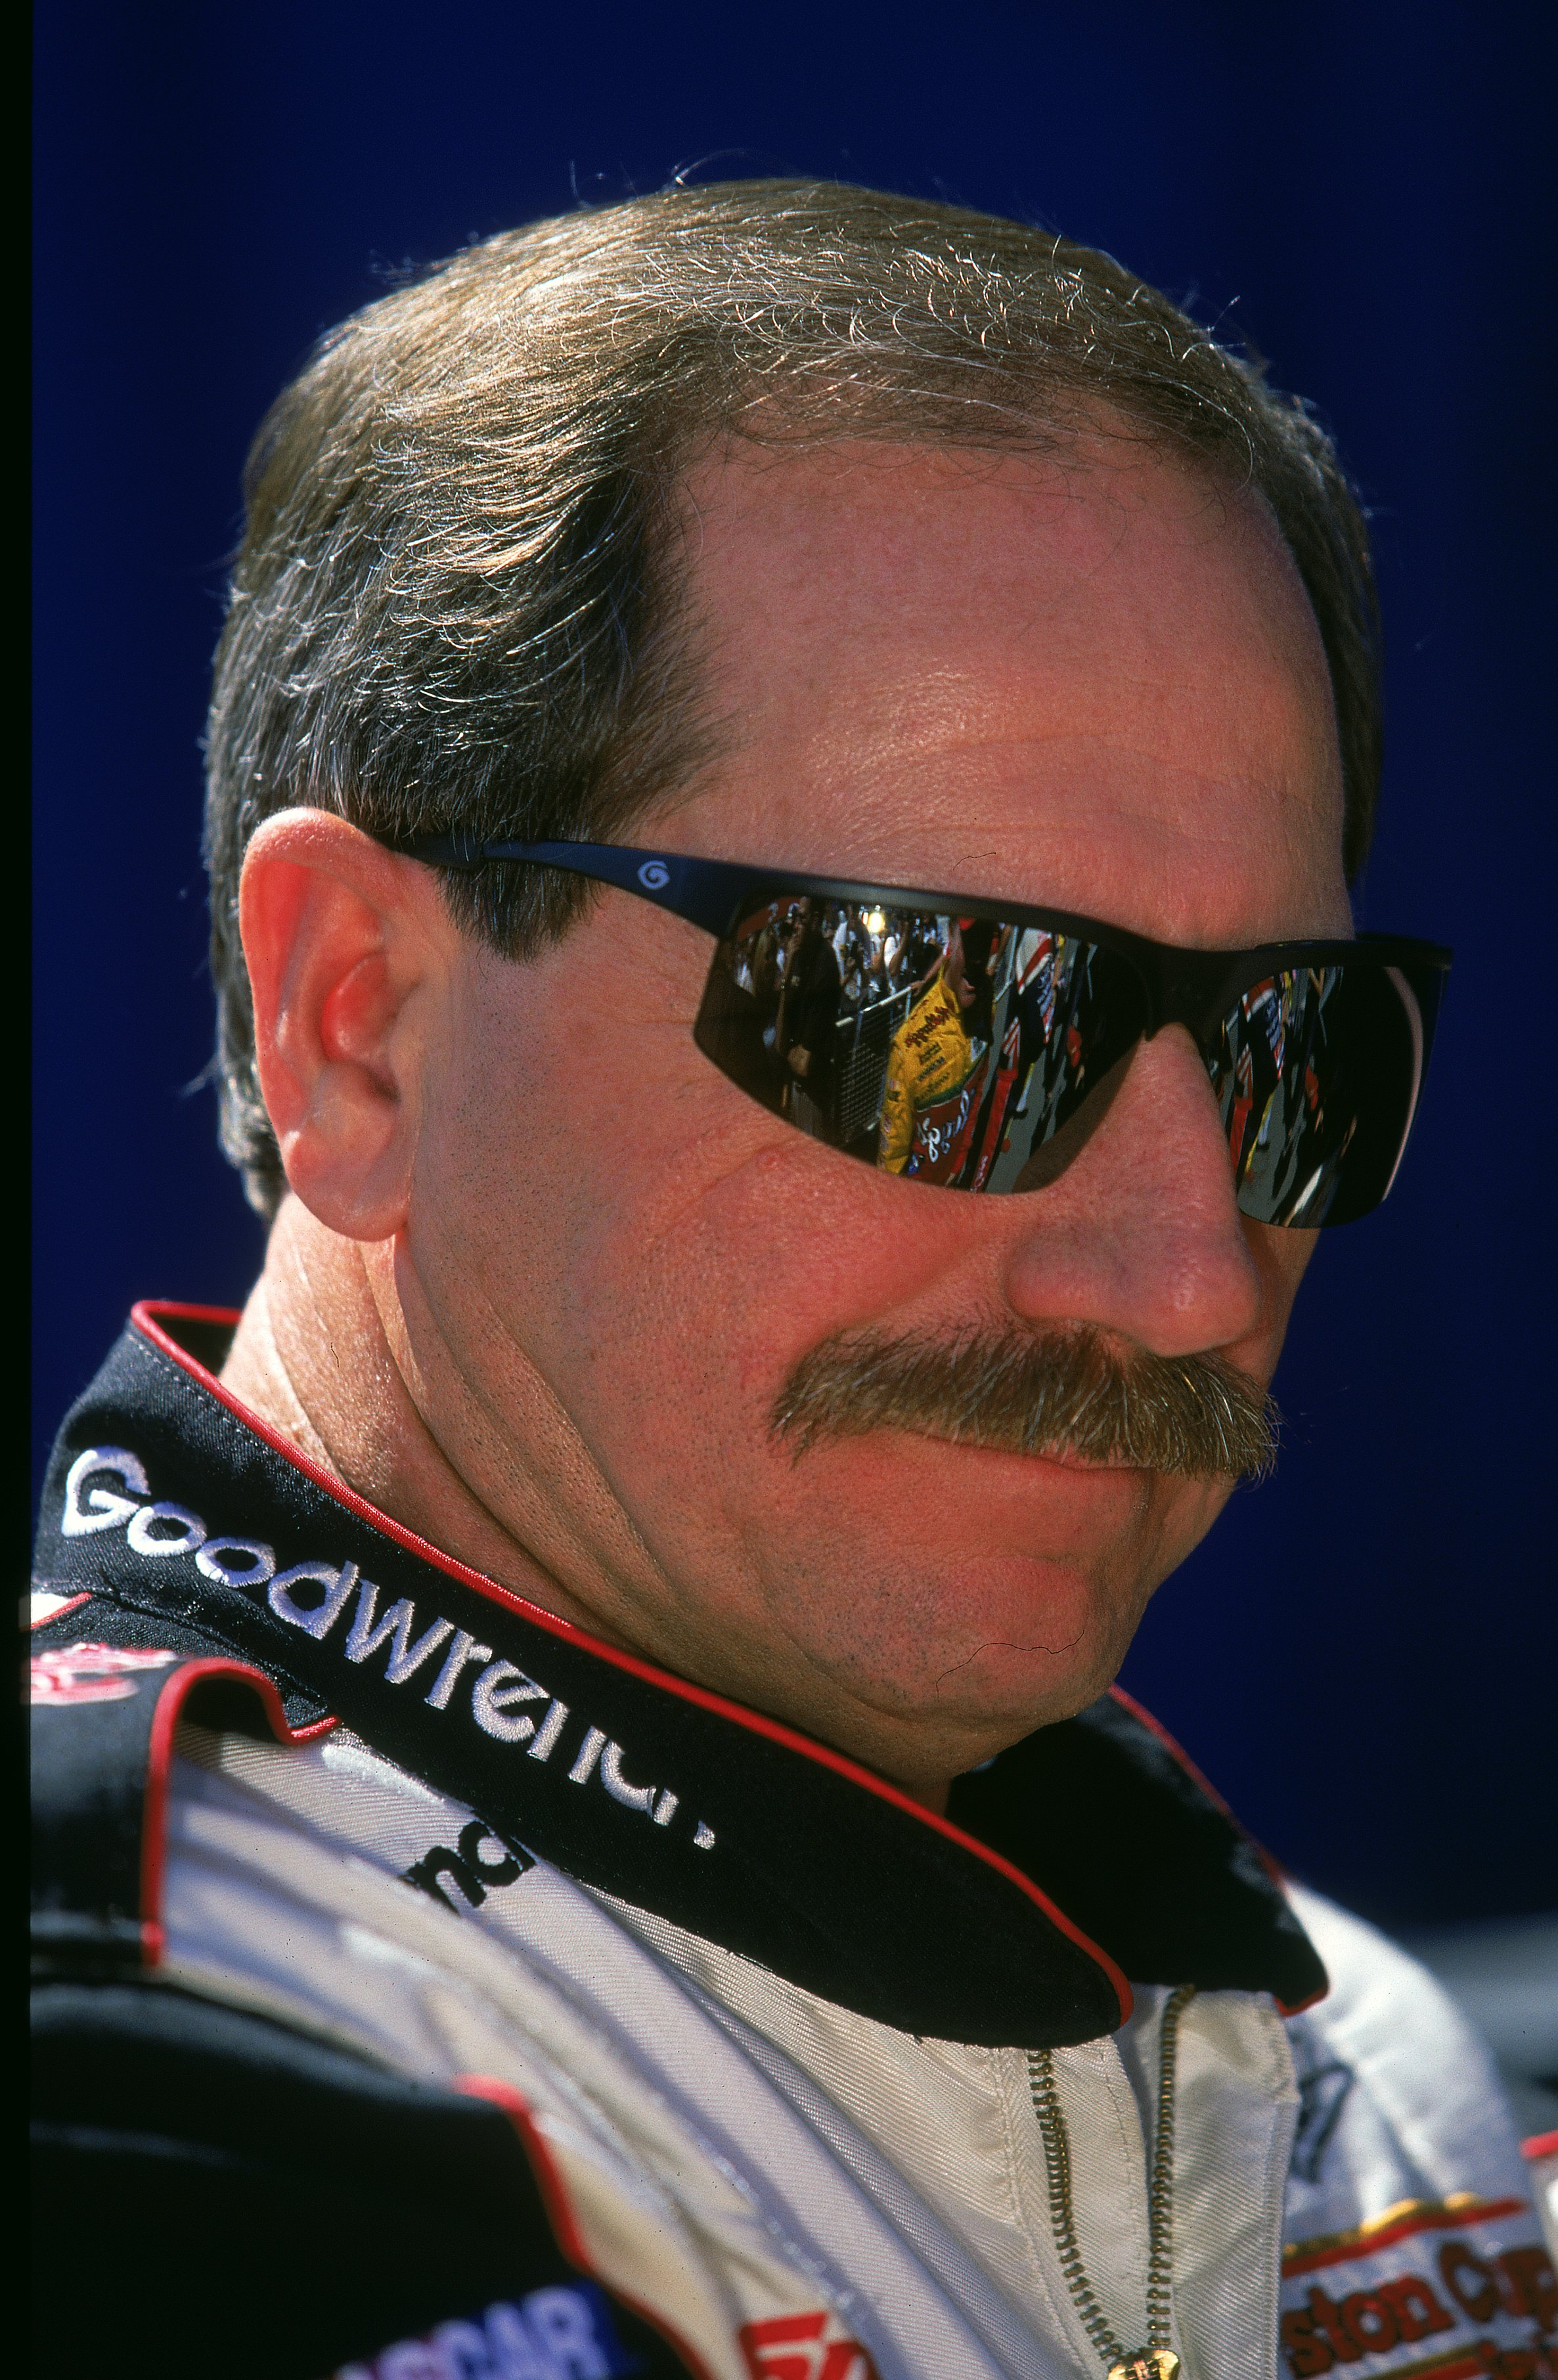 30 Apr 2000: Dale Earnhardt Sr. #3 is watching the action during the NAPA Auto Parts 500, Part of the NASCAR Winston Cup Series, at the California Speedway in Fontana, California. Mandatory Credit: Donald Miralle  /Allsport